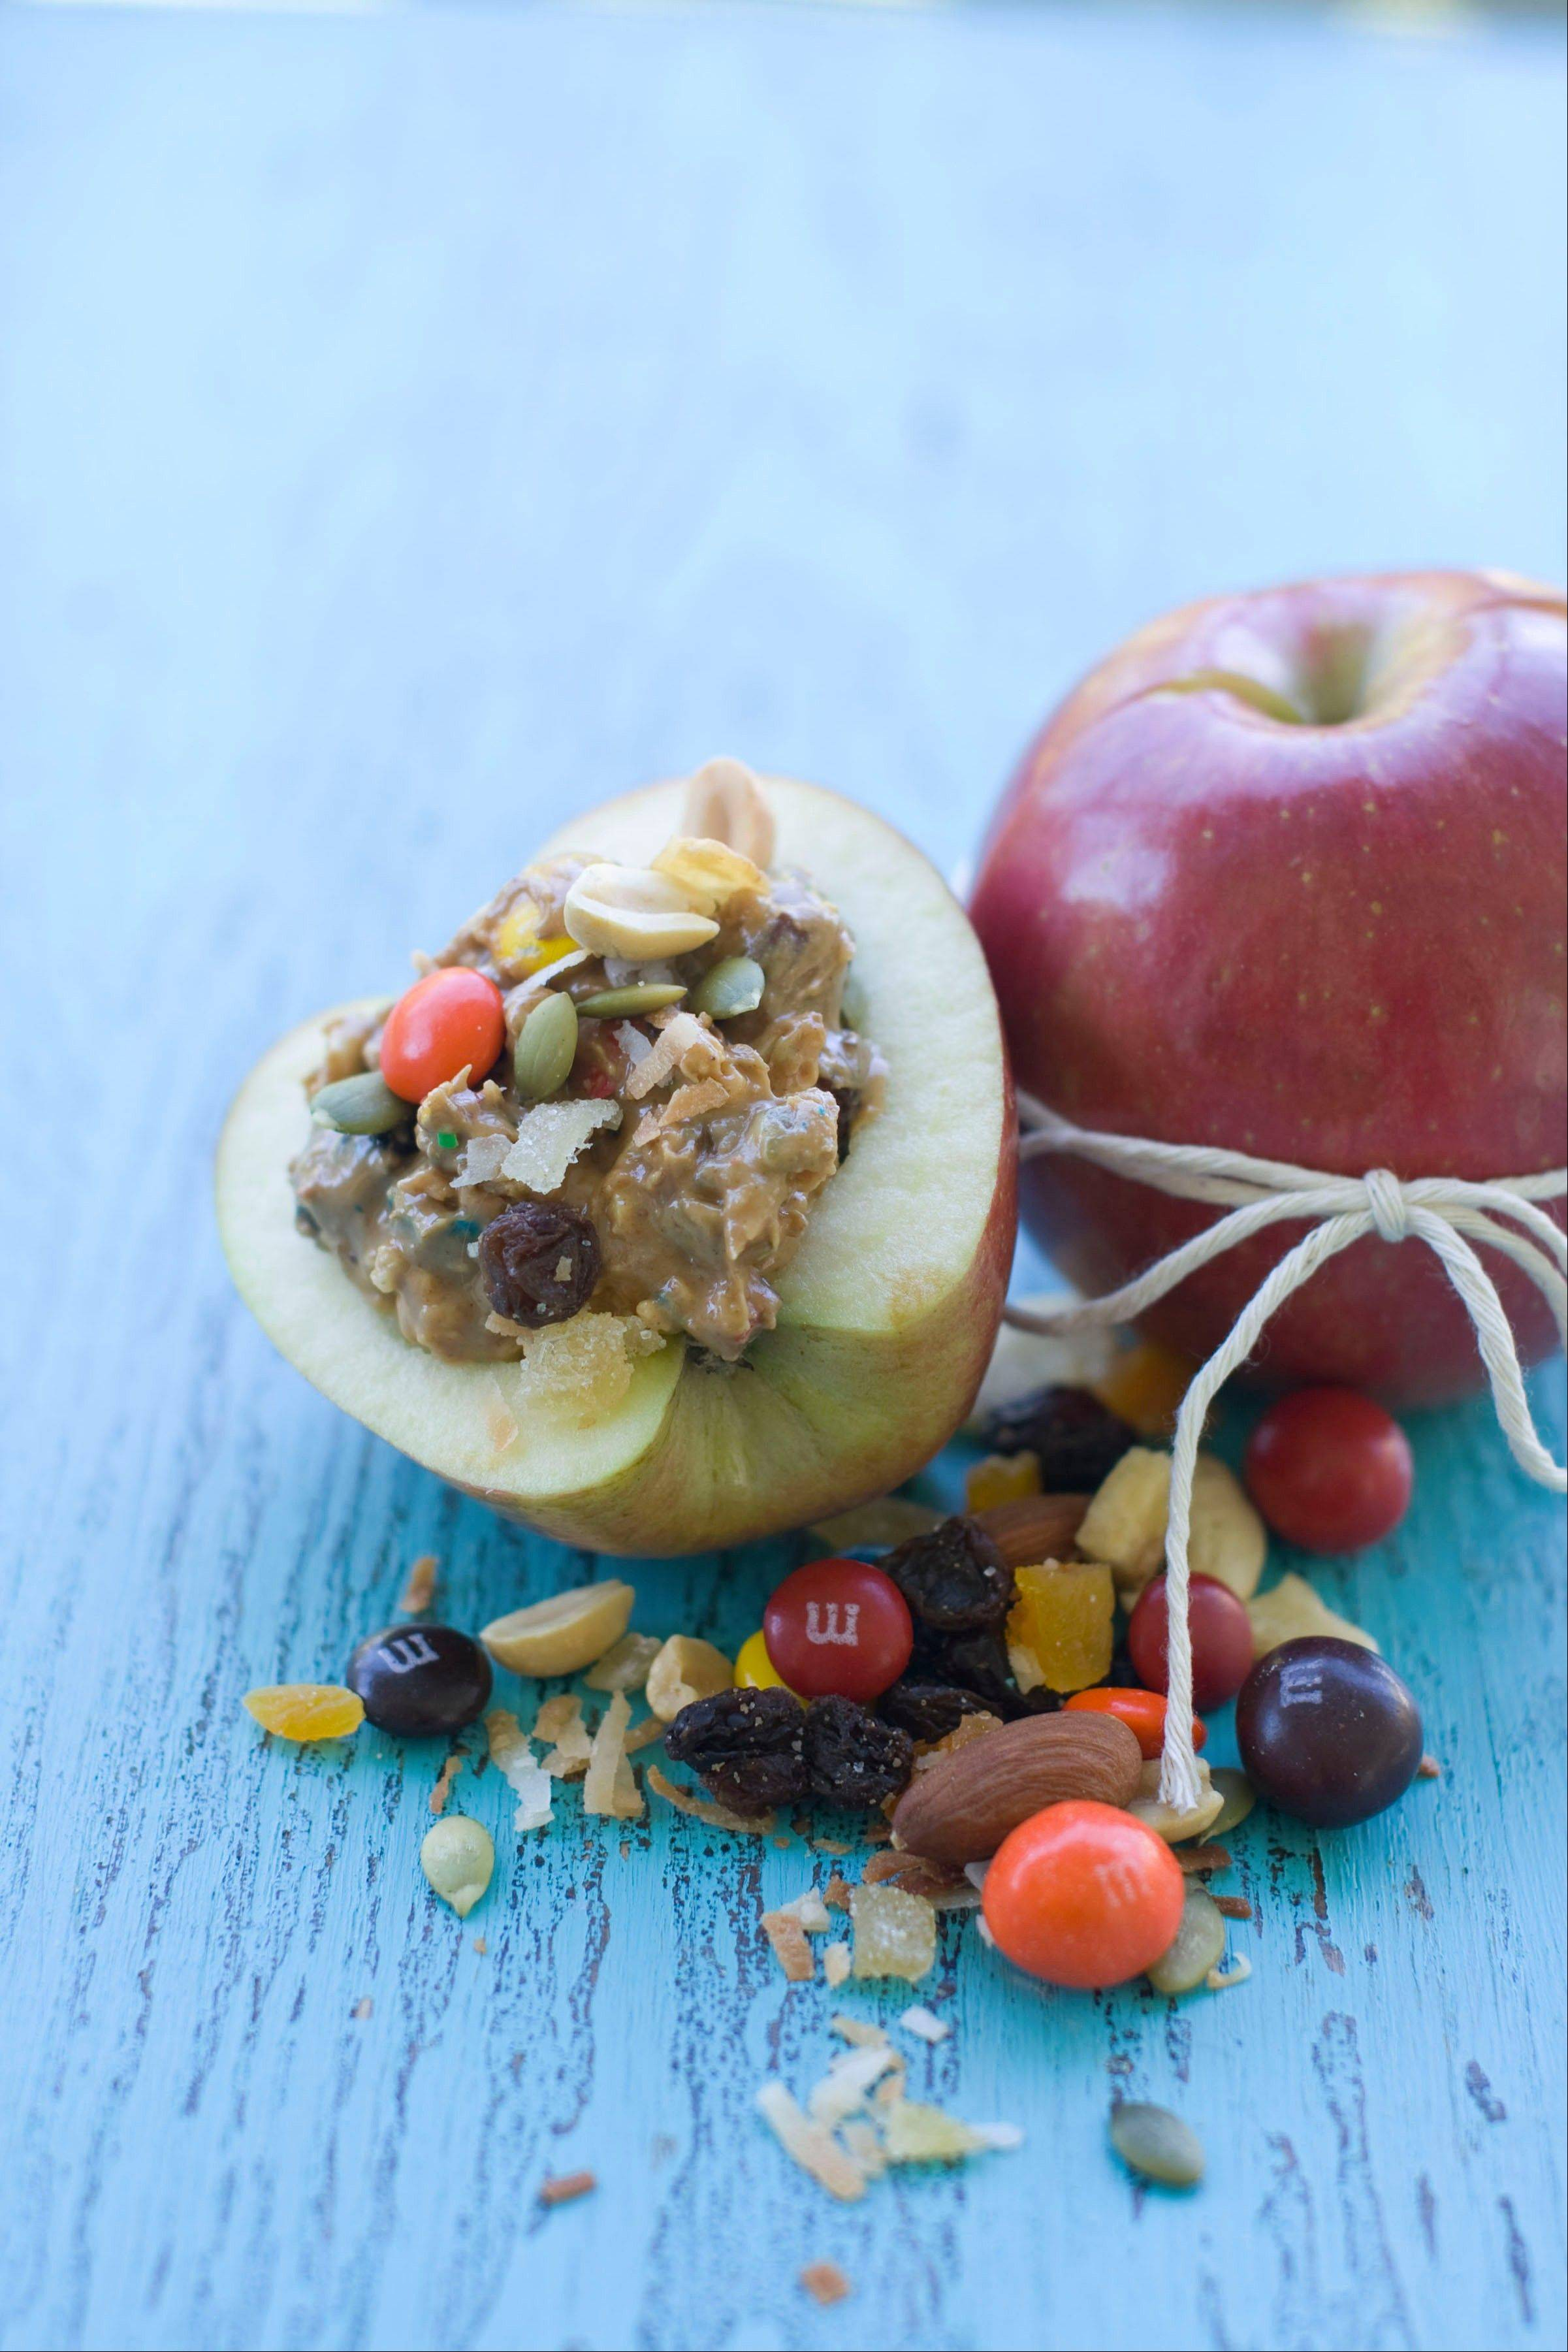 Apples stuffed with gorp make a brown-bag lunch something special